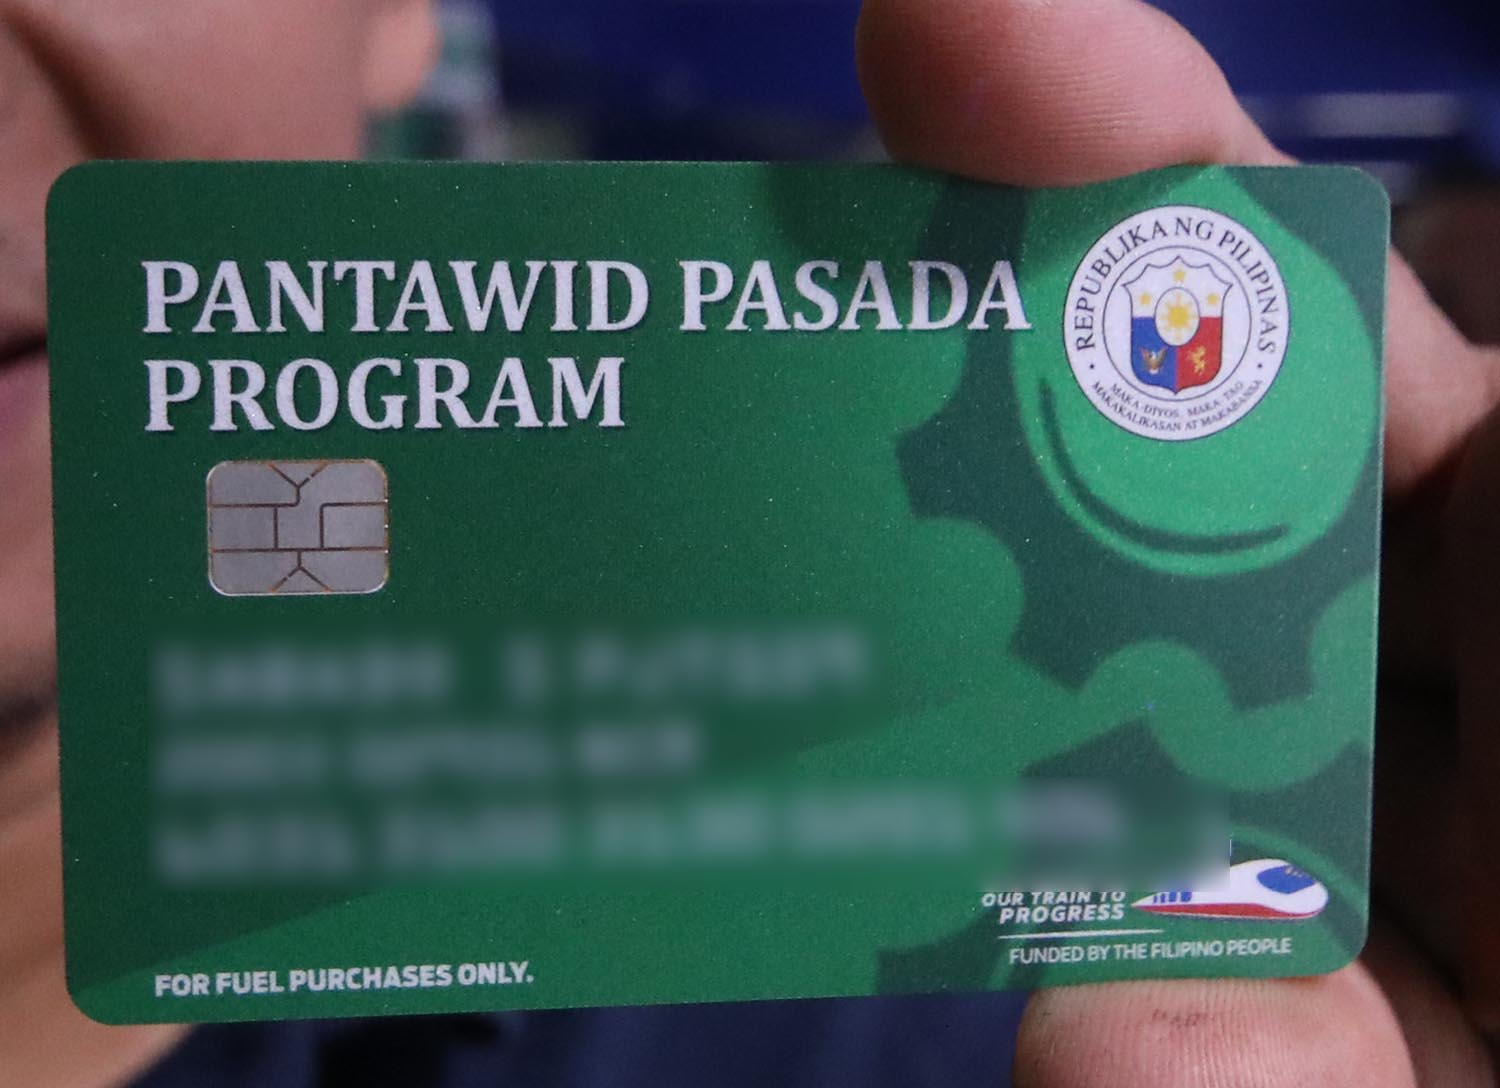 CLOSE UP. The card (details blurred) bears the complete name of the franchise holder, plate number of the PUJ, region where the franchise was registered, and the card number. Photo by Darren Langit/Rappler